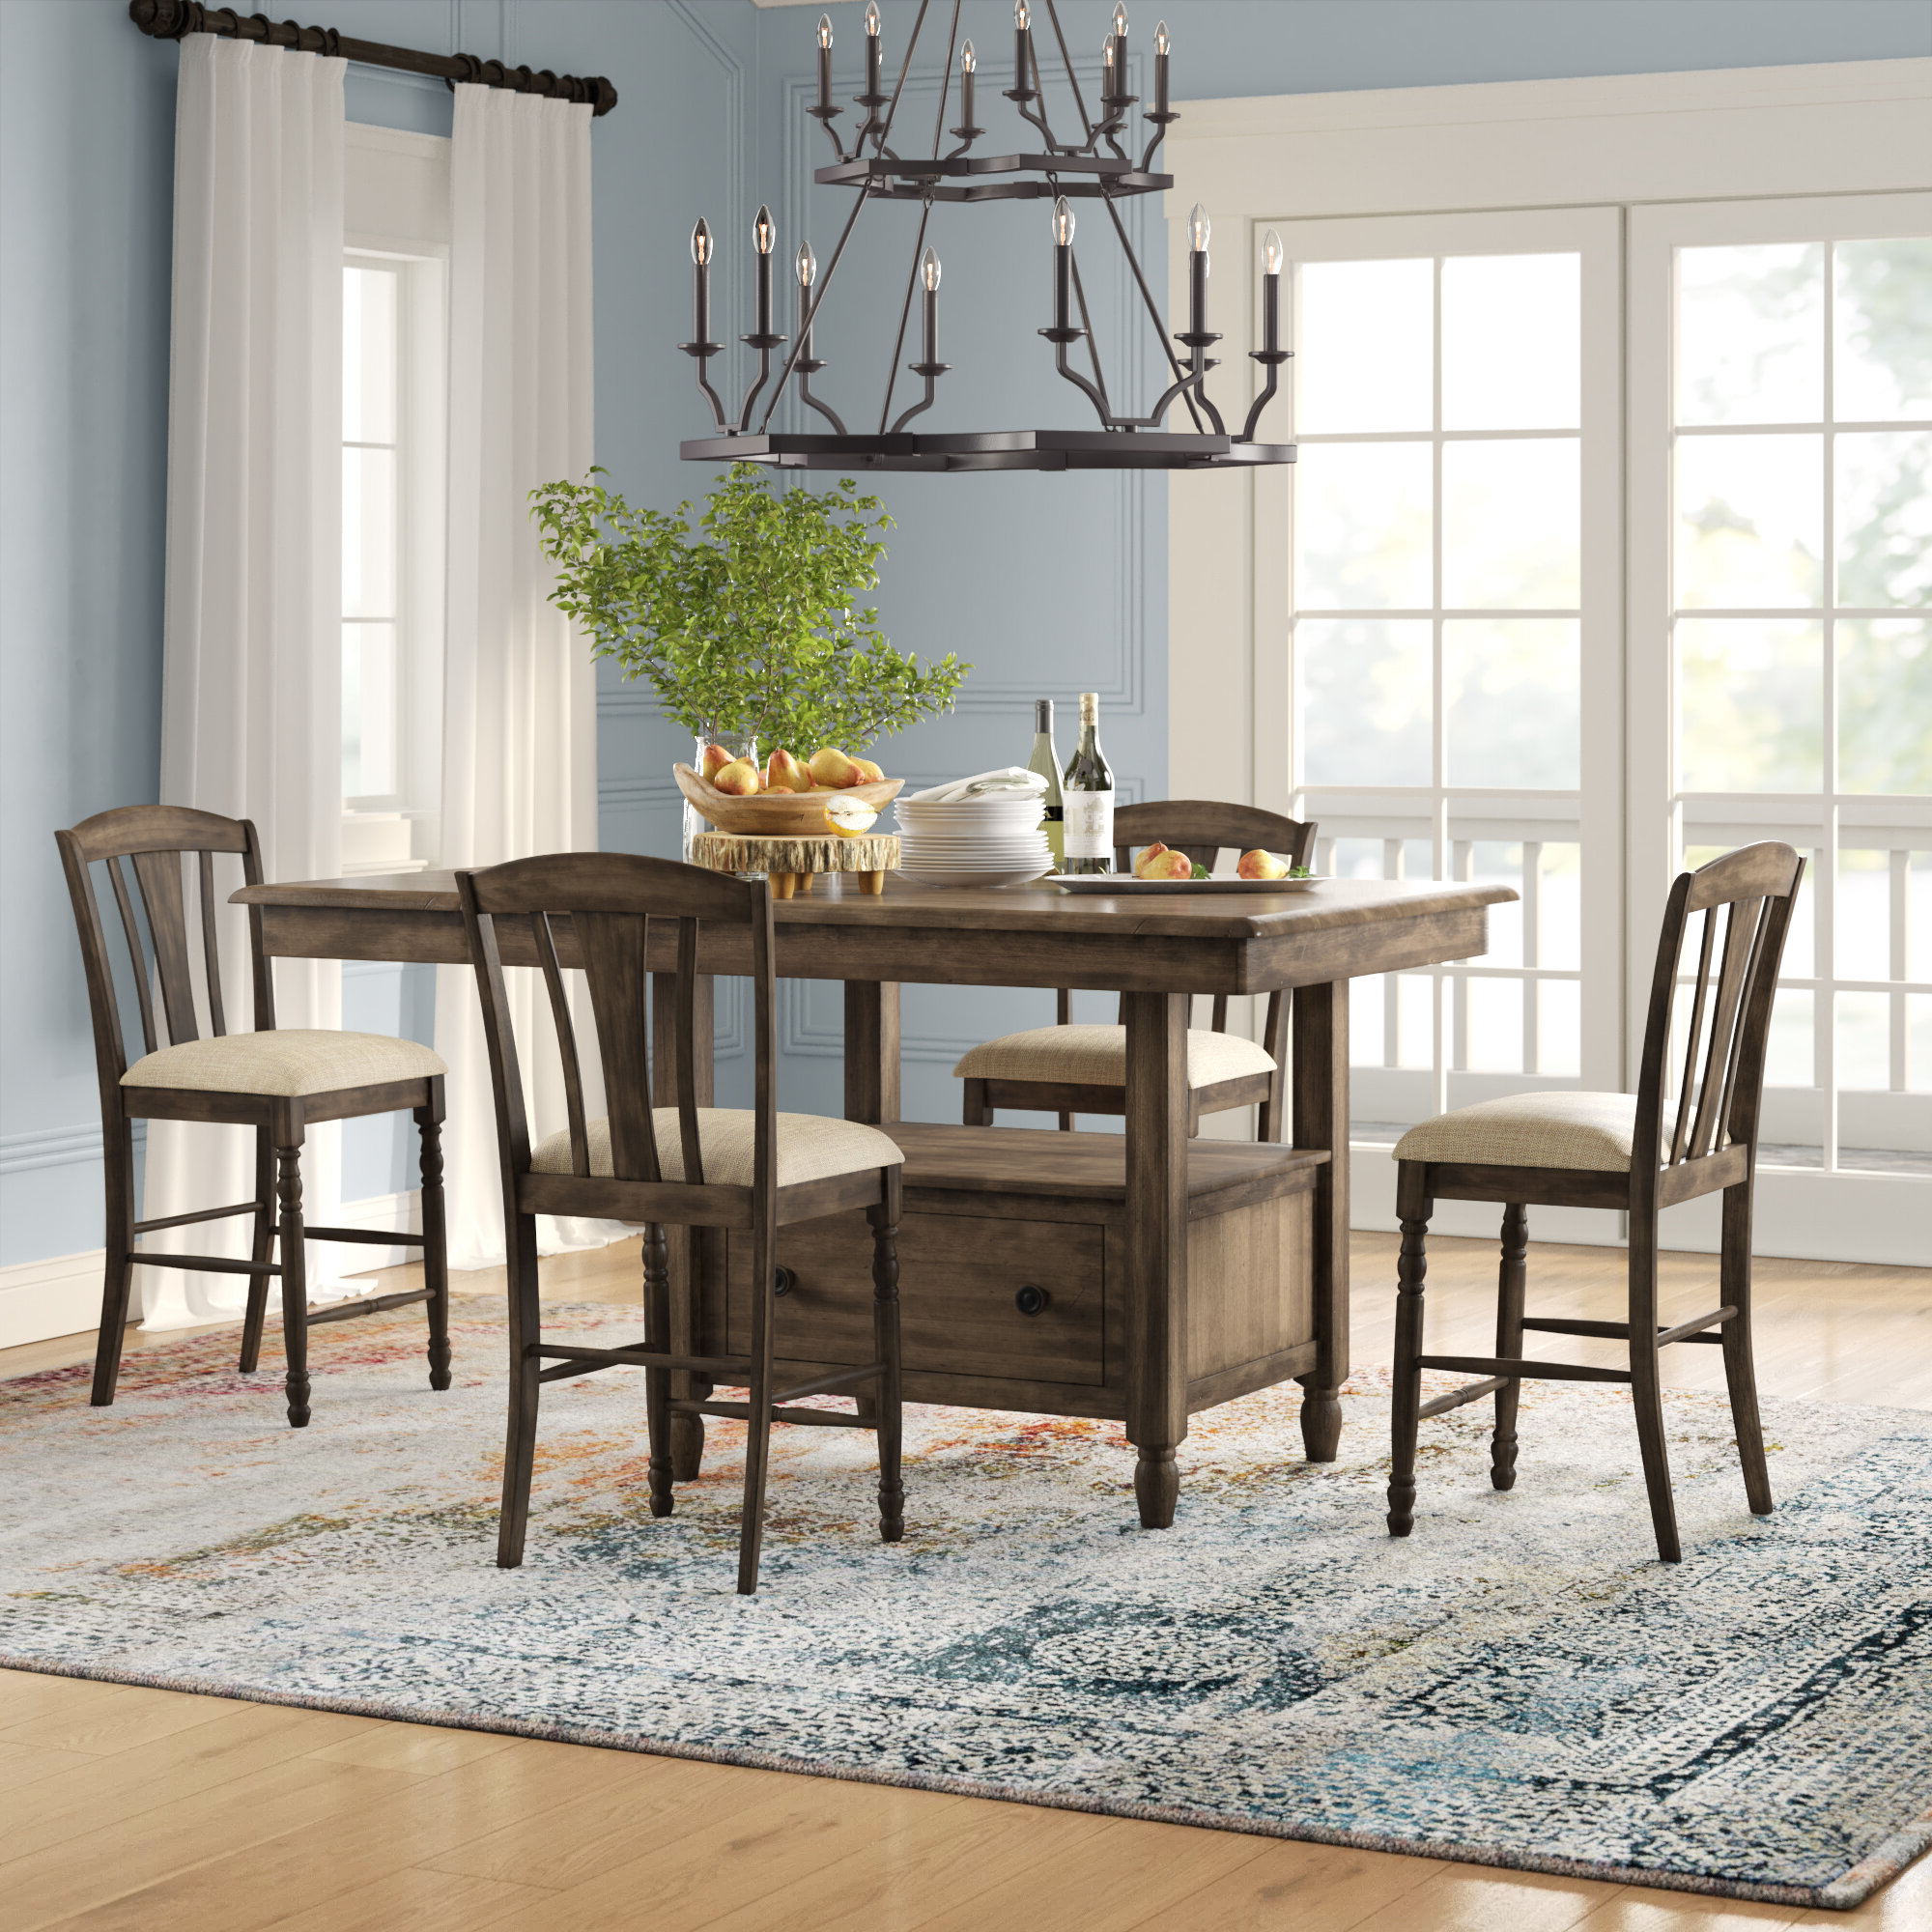 Perez 5 Piece Solid Wood Breakfast Nook Dining Set Inside Recent 5 Piece Breakfast Nook Dining Sets (View 12 of 20)